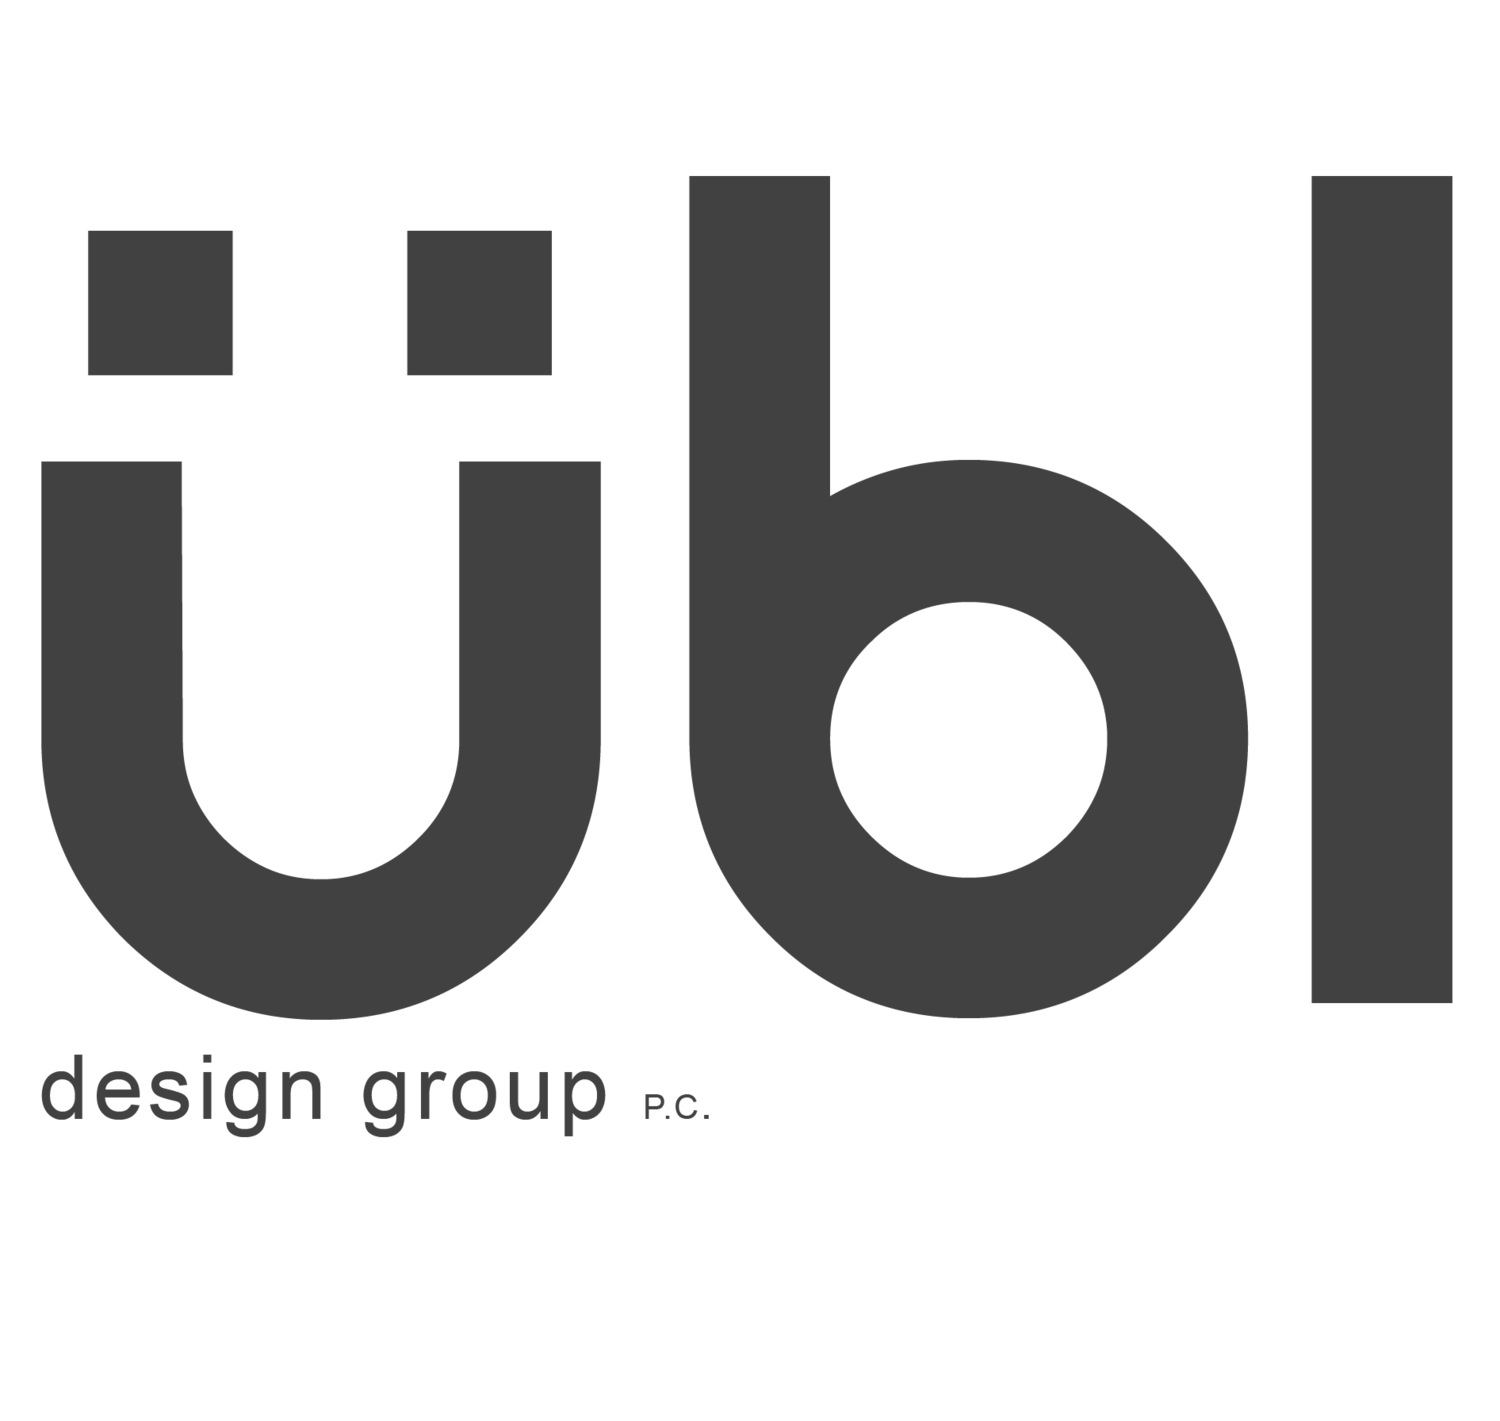 Übl Design Group